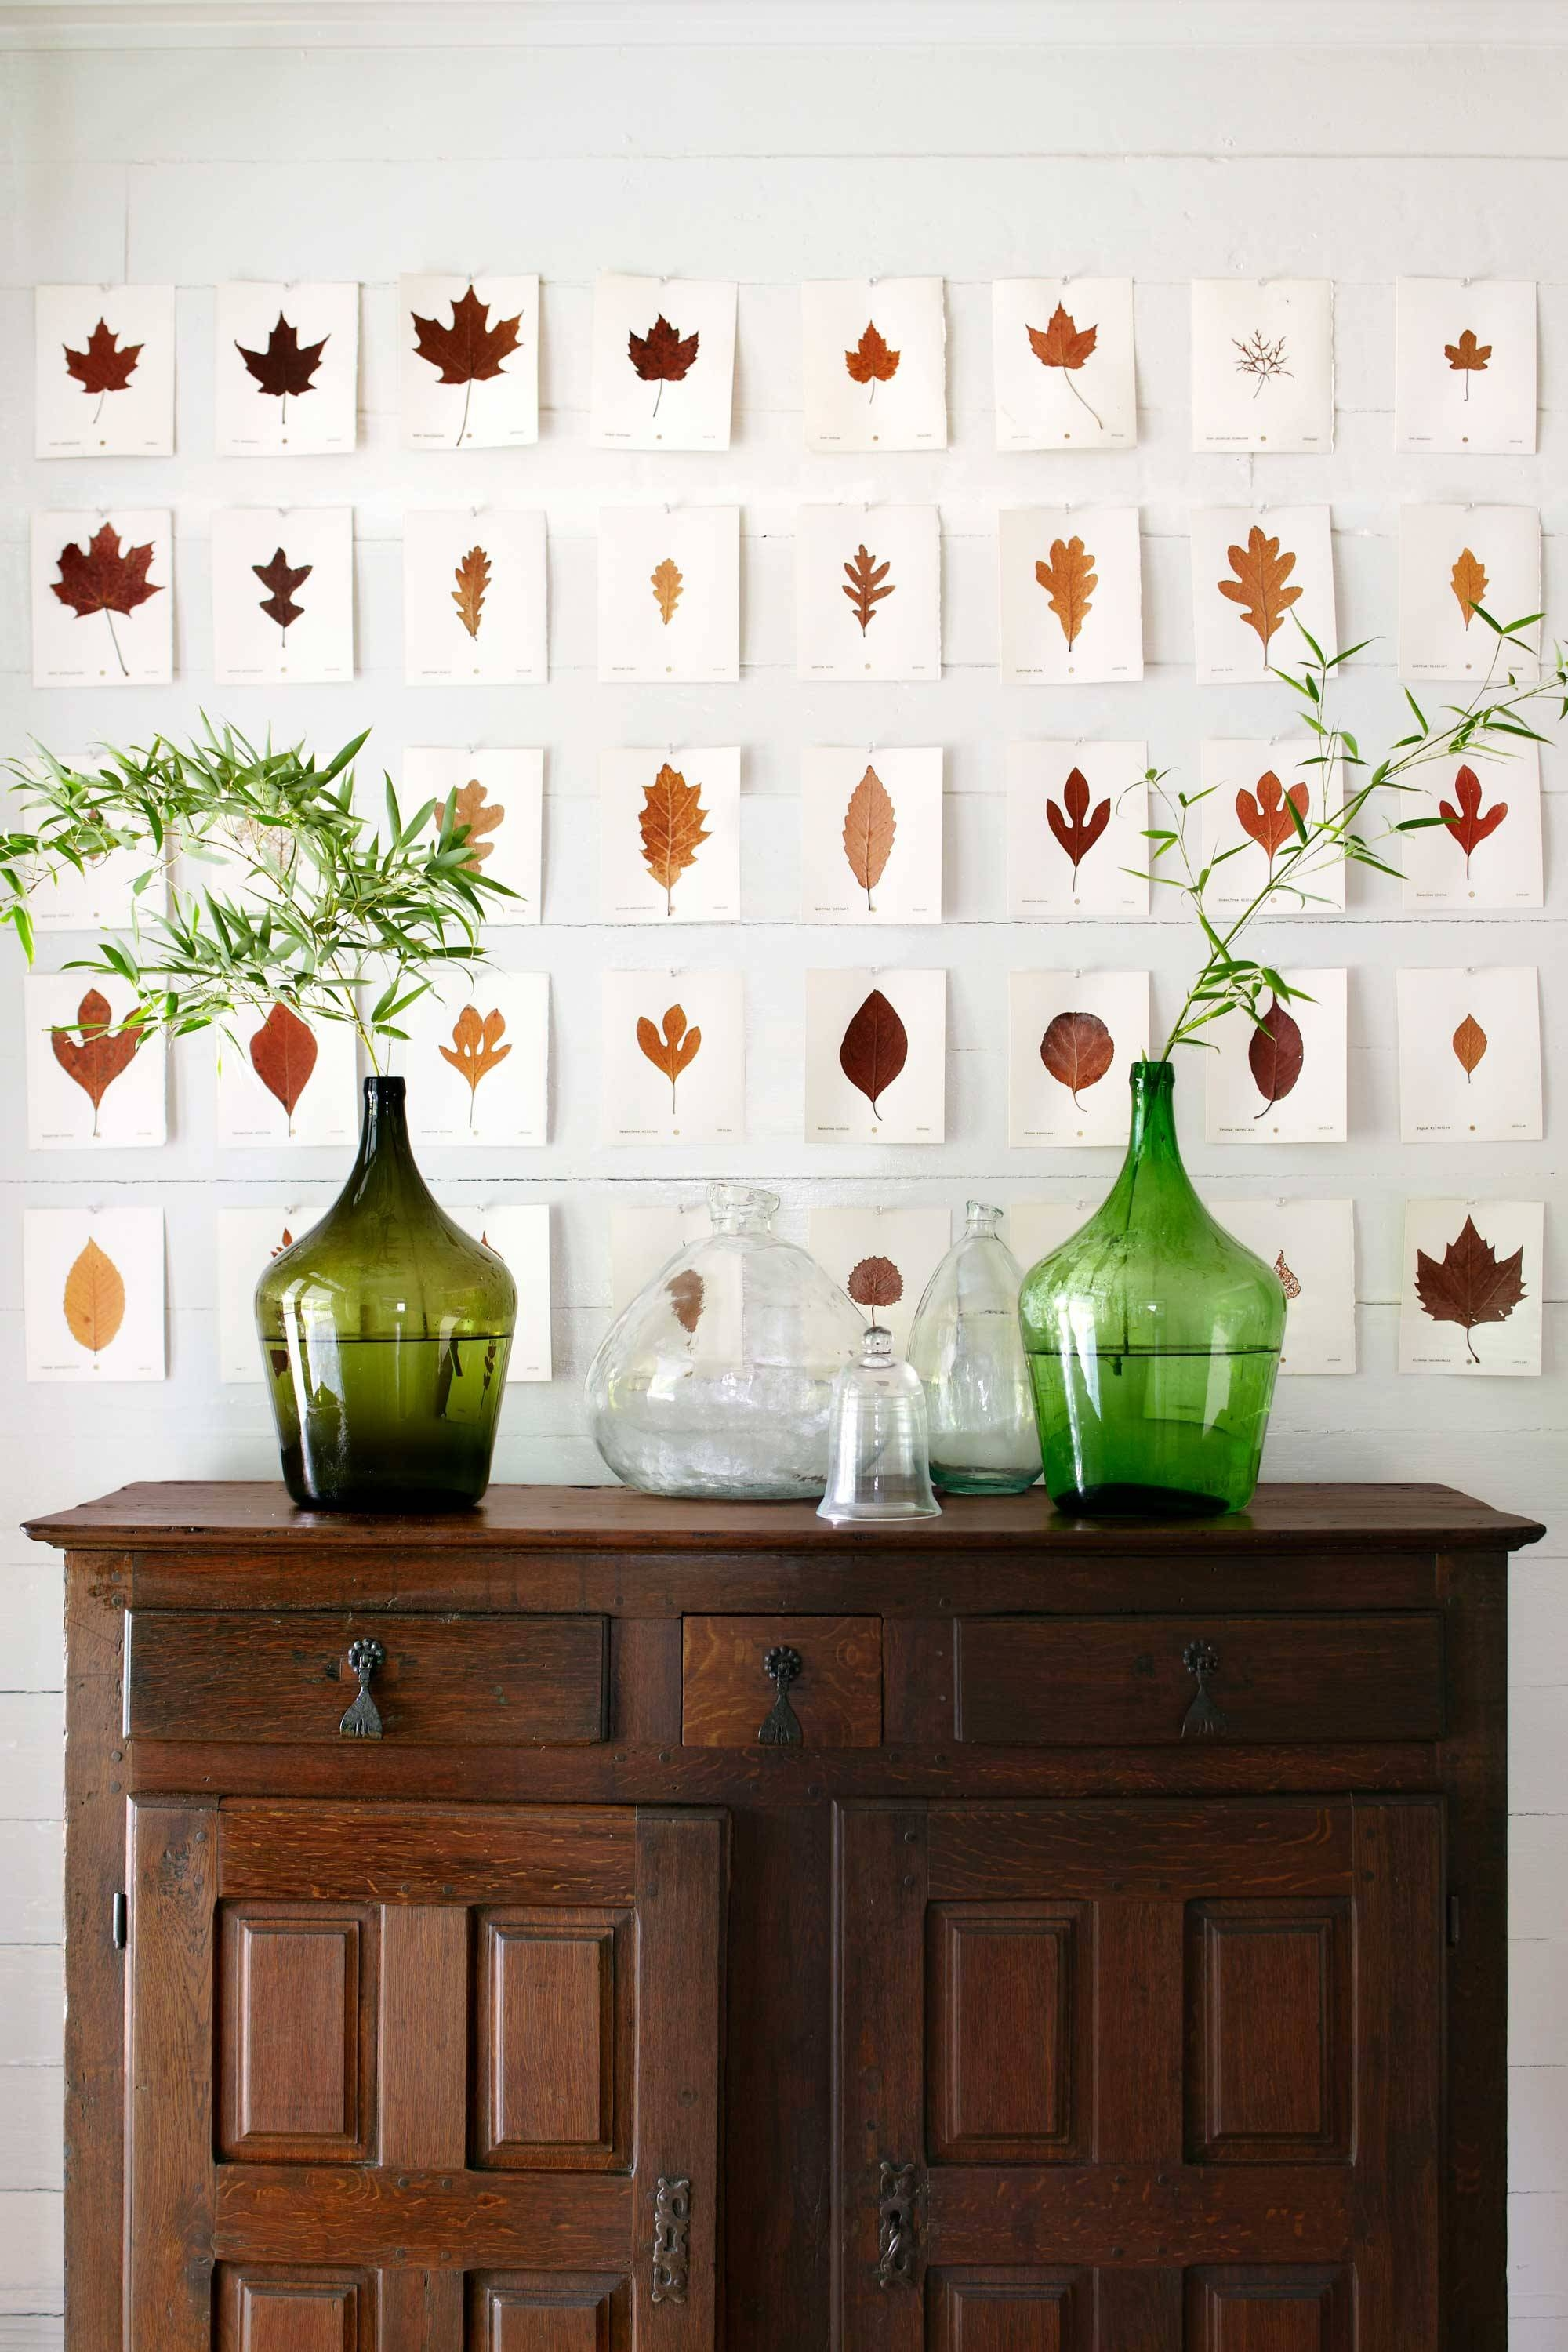 47 Easy Fall Decorating Ideas – Autumn Decor Tips To Try With Latest Autumn  Inspired Wall Art (View 6 of 25)